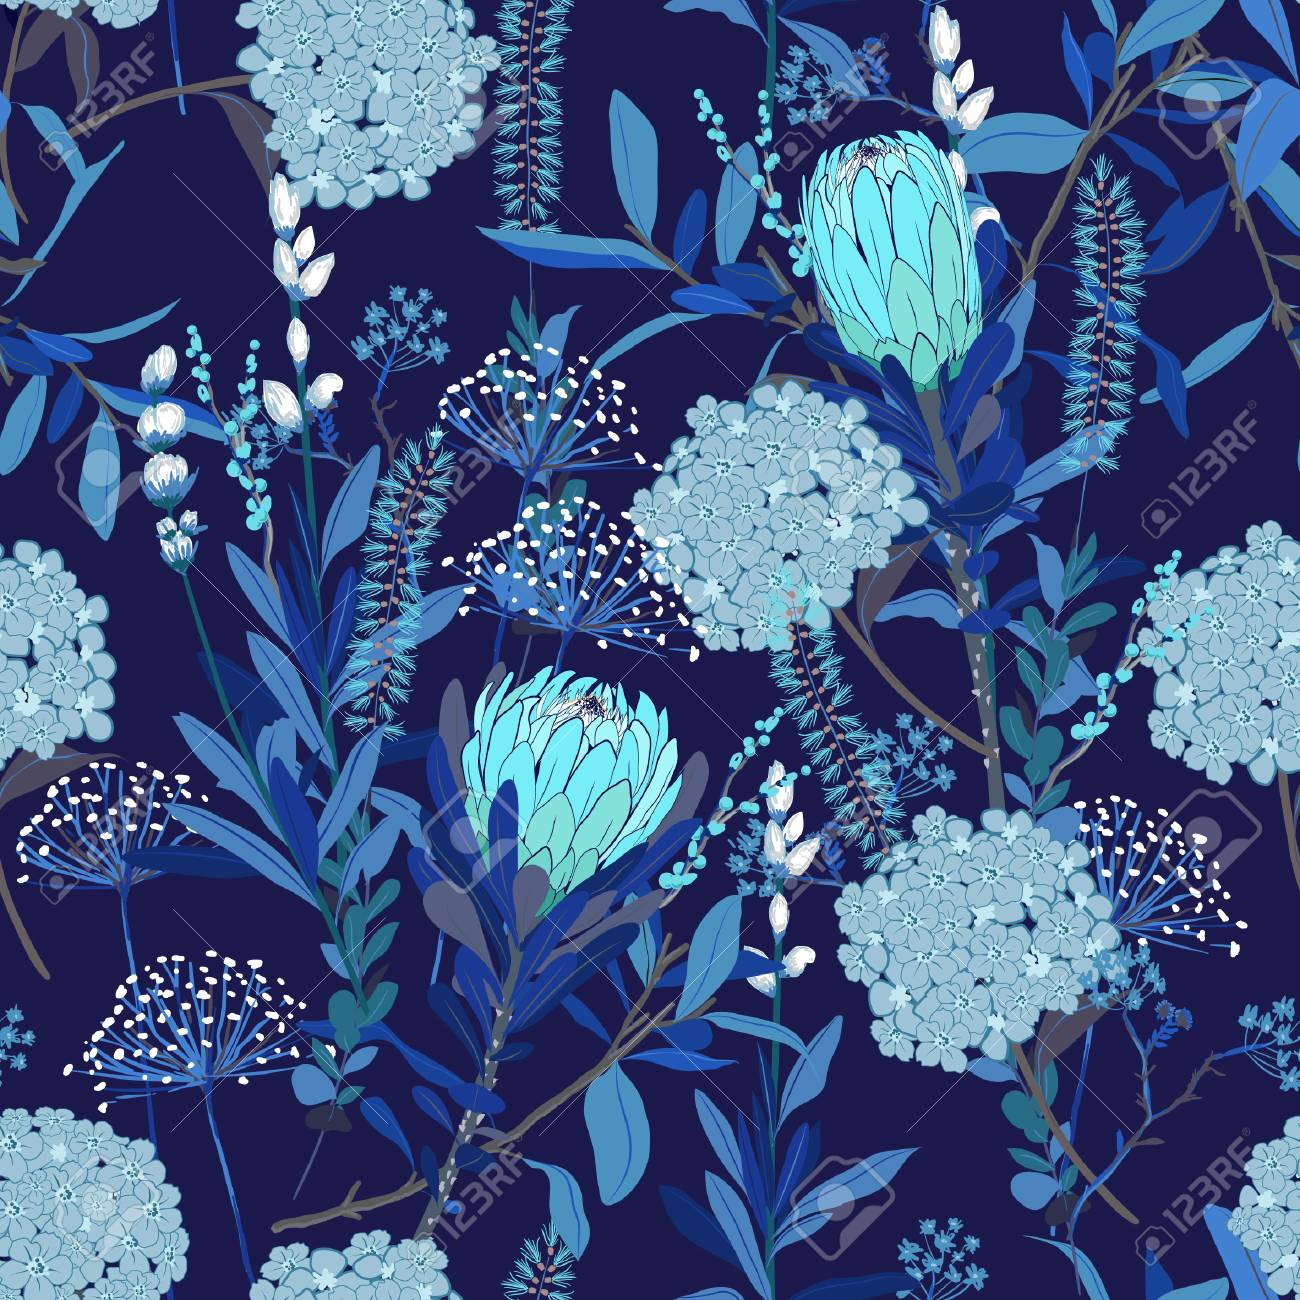 Monotone Blue Floral Pattern In The Many Kind Of Flowers Tropical